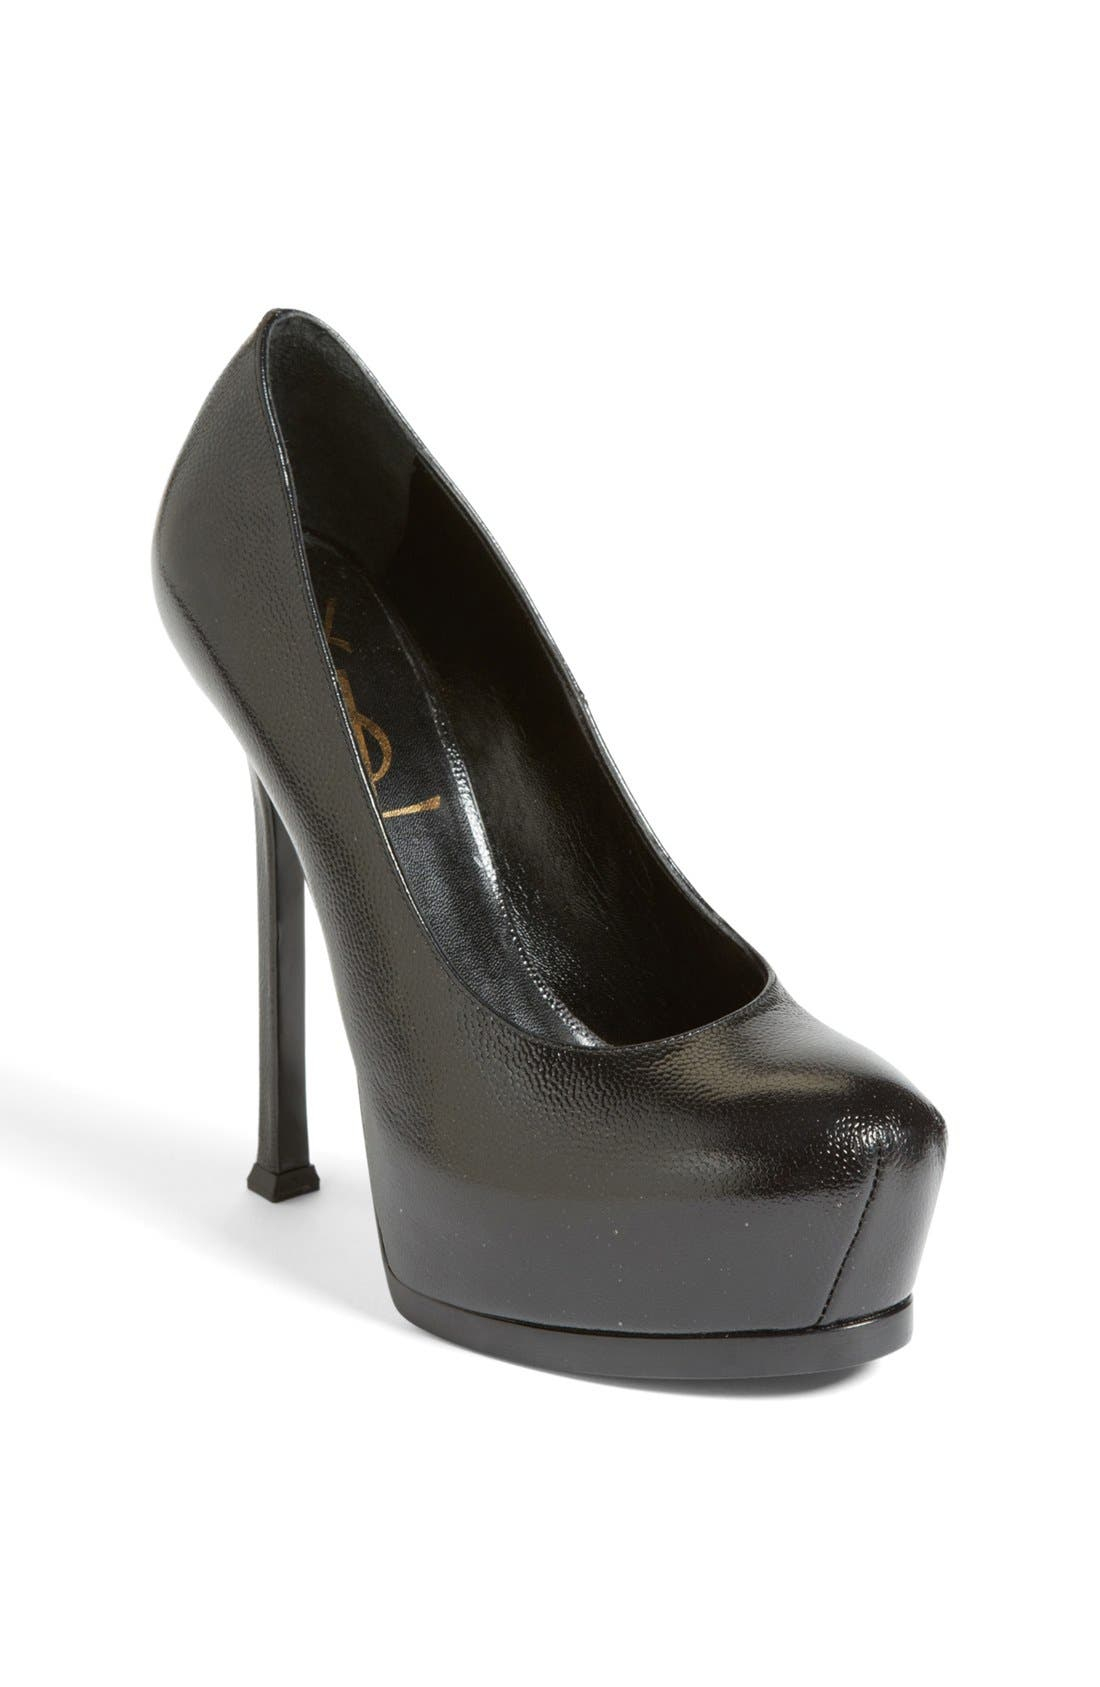 Alternate Image 1 Selected - Saint Laurent 'Tribute Two' Pump